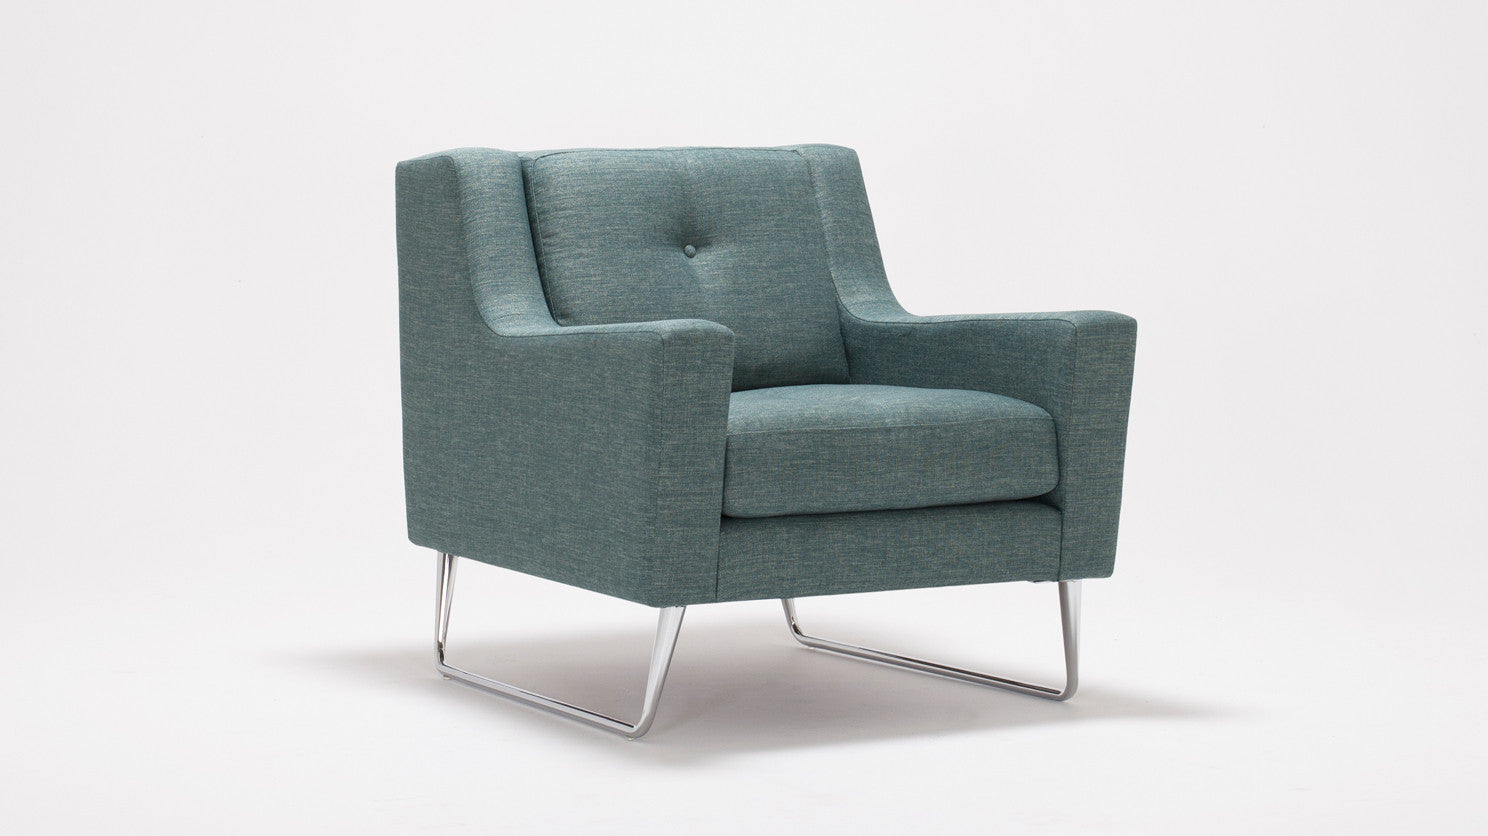 Elise Chair & Elise Chair by EQ3 available at Five Elements Furniture